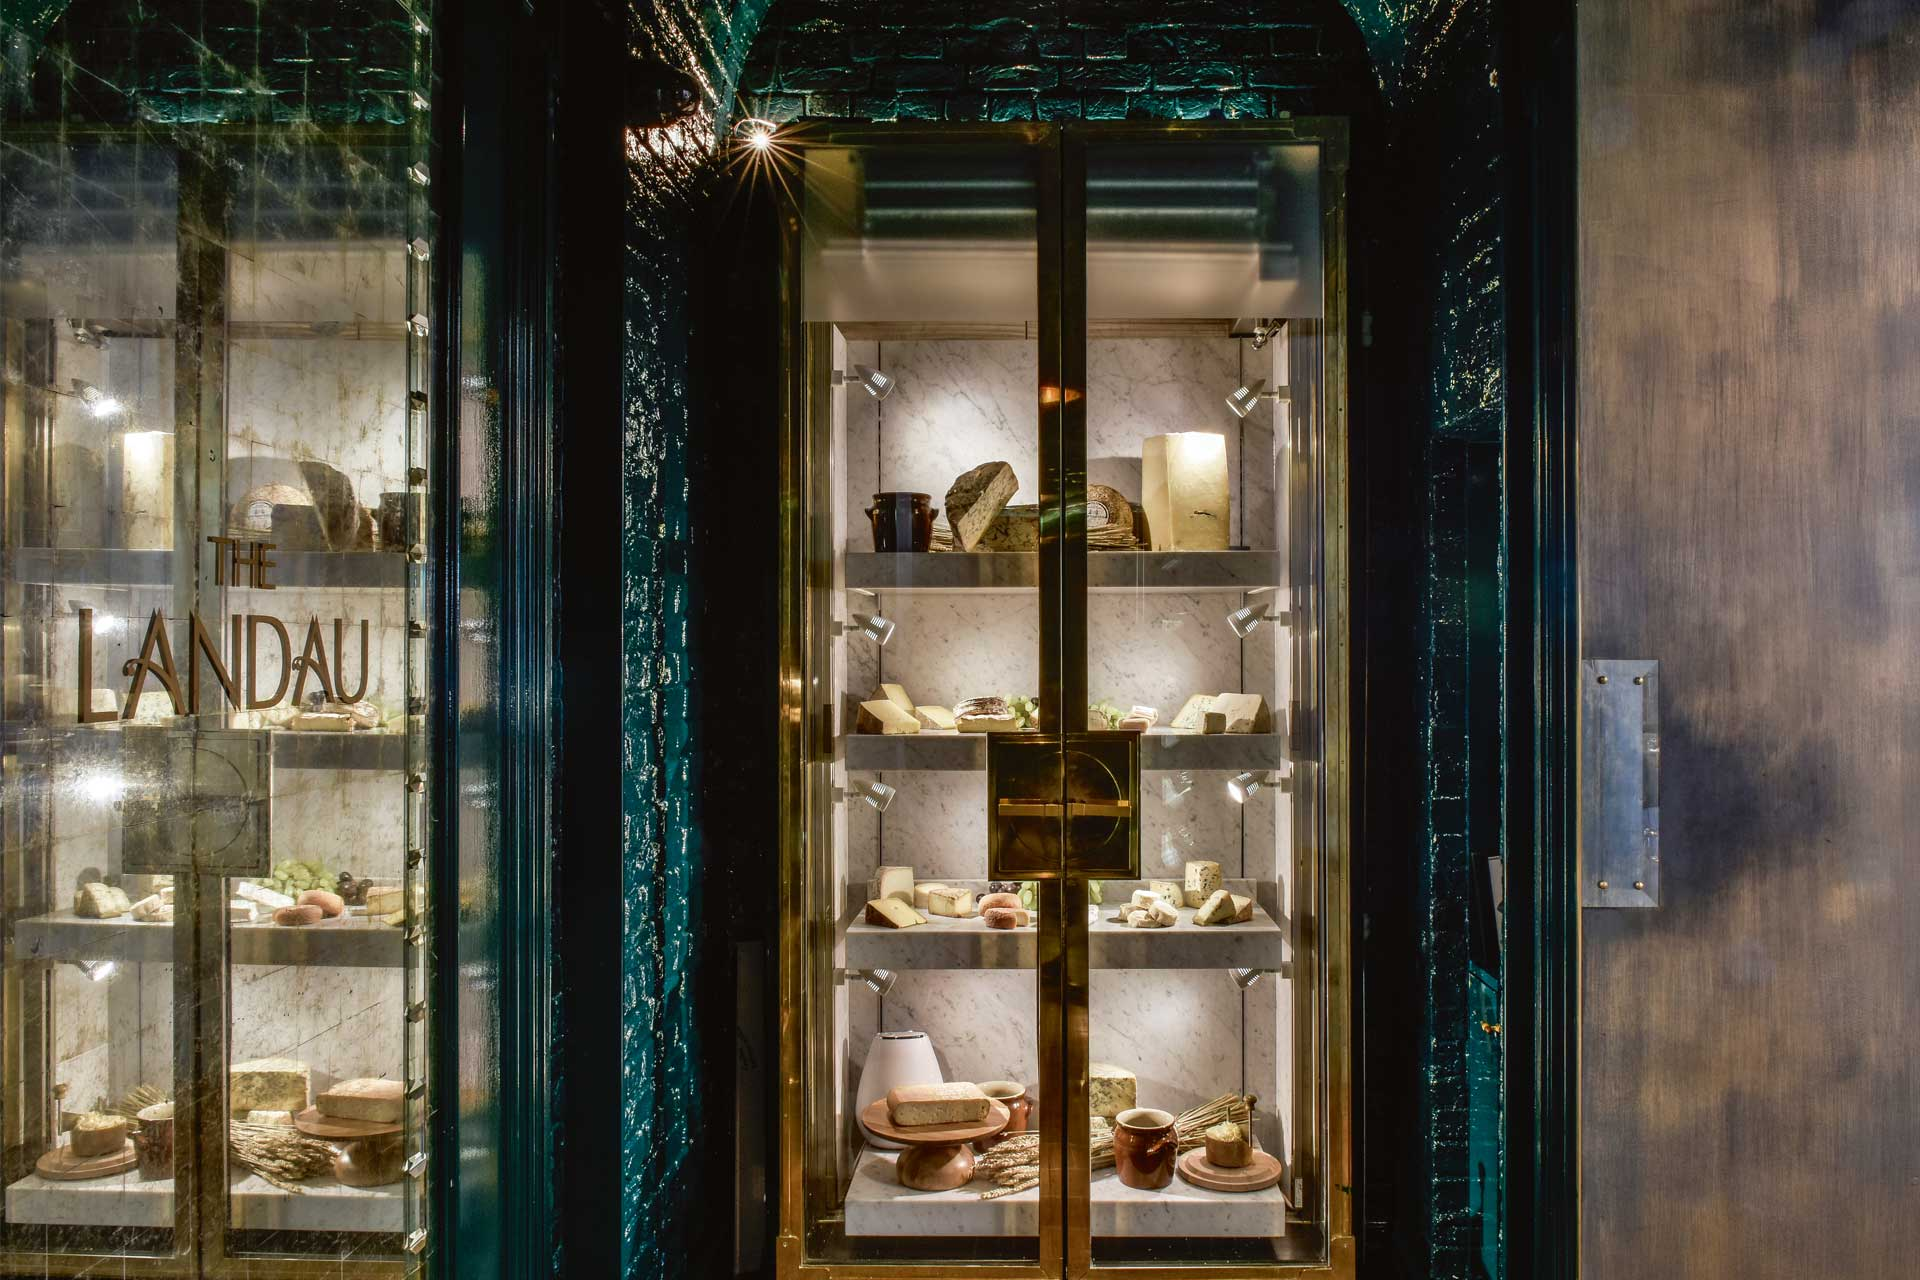 Roux at the Landau in The Langham has a bespoke cheese counter